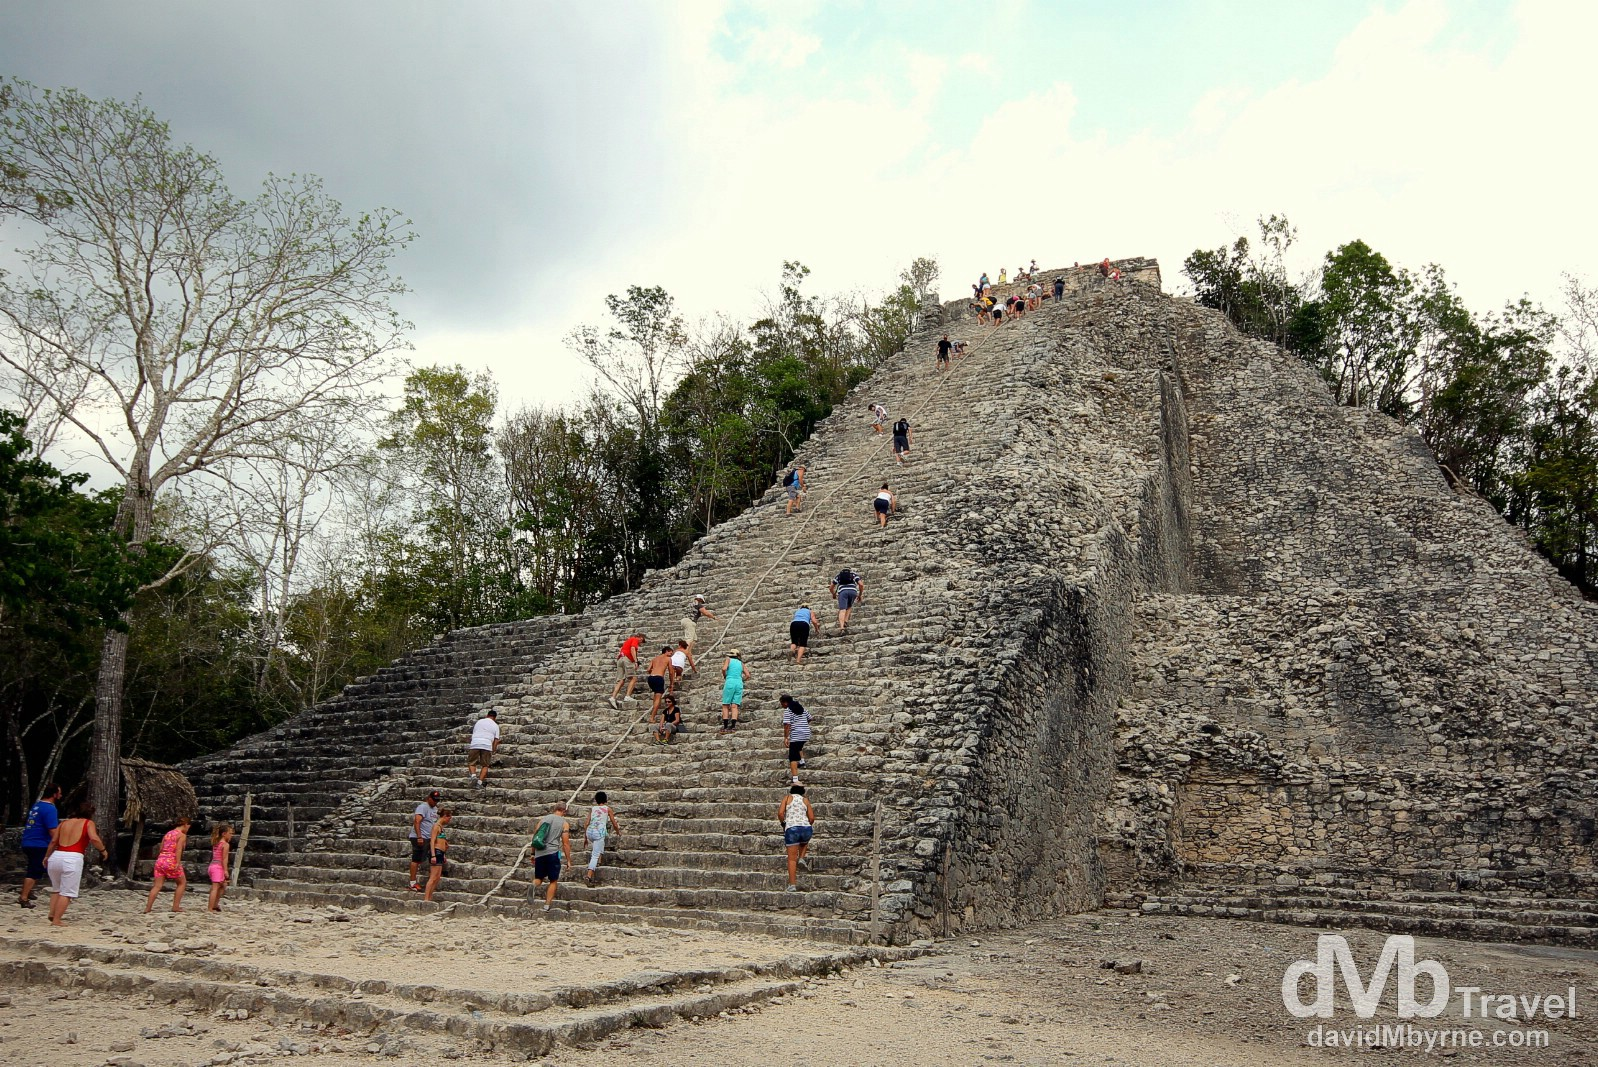 Climbing the Nohoch Mul (Big Mound), or Great Pyramid, at the Coba Mayan ruins, Yucatan Peninsula, Mexico. May 7th 2013.